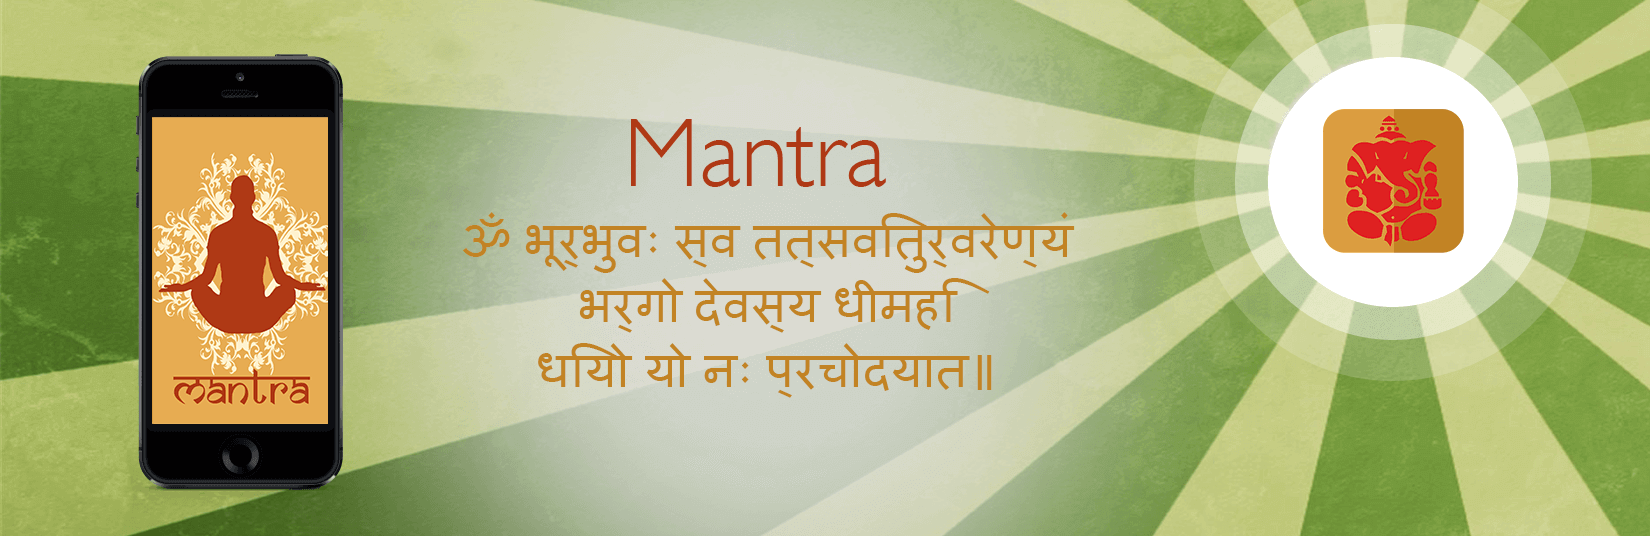 Lets Nurture Adds More Features to 'Mantra App' for Enhancing the Spirituality of Users!